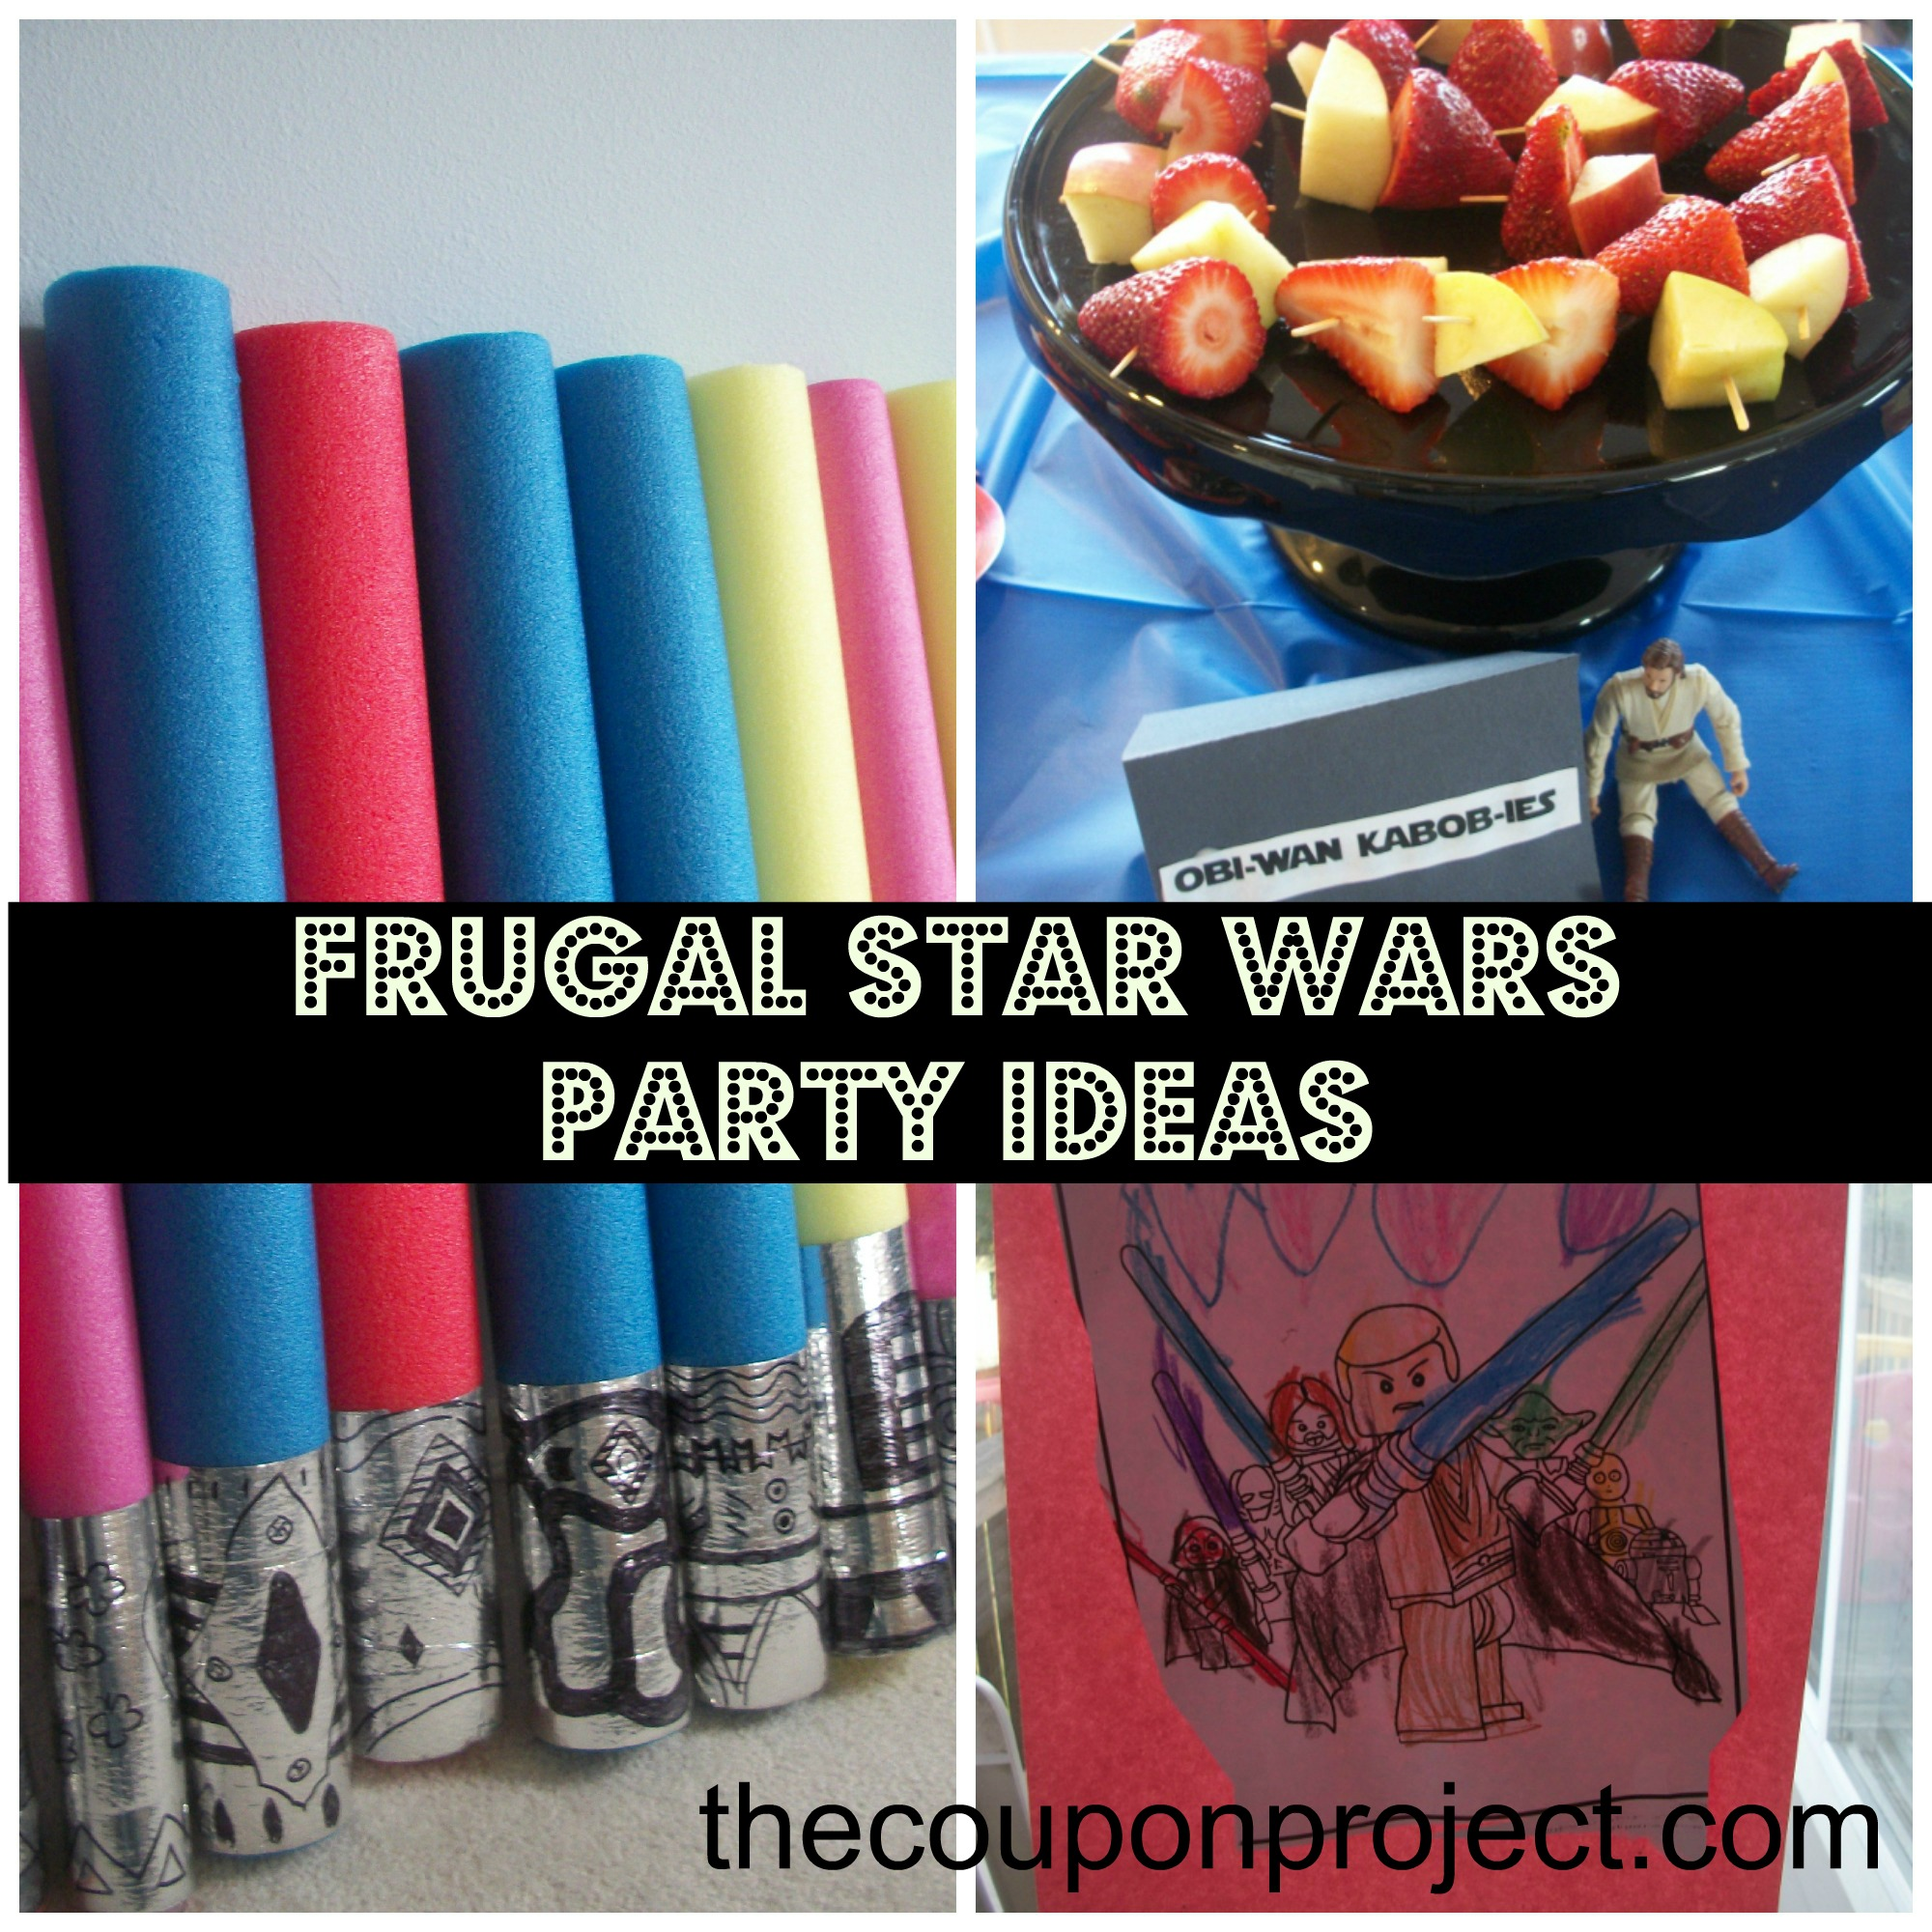 Frugal Star Wars Party Ideas